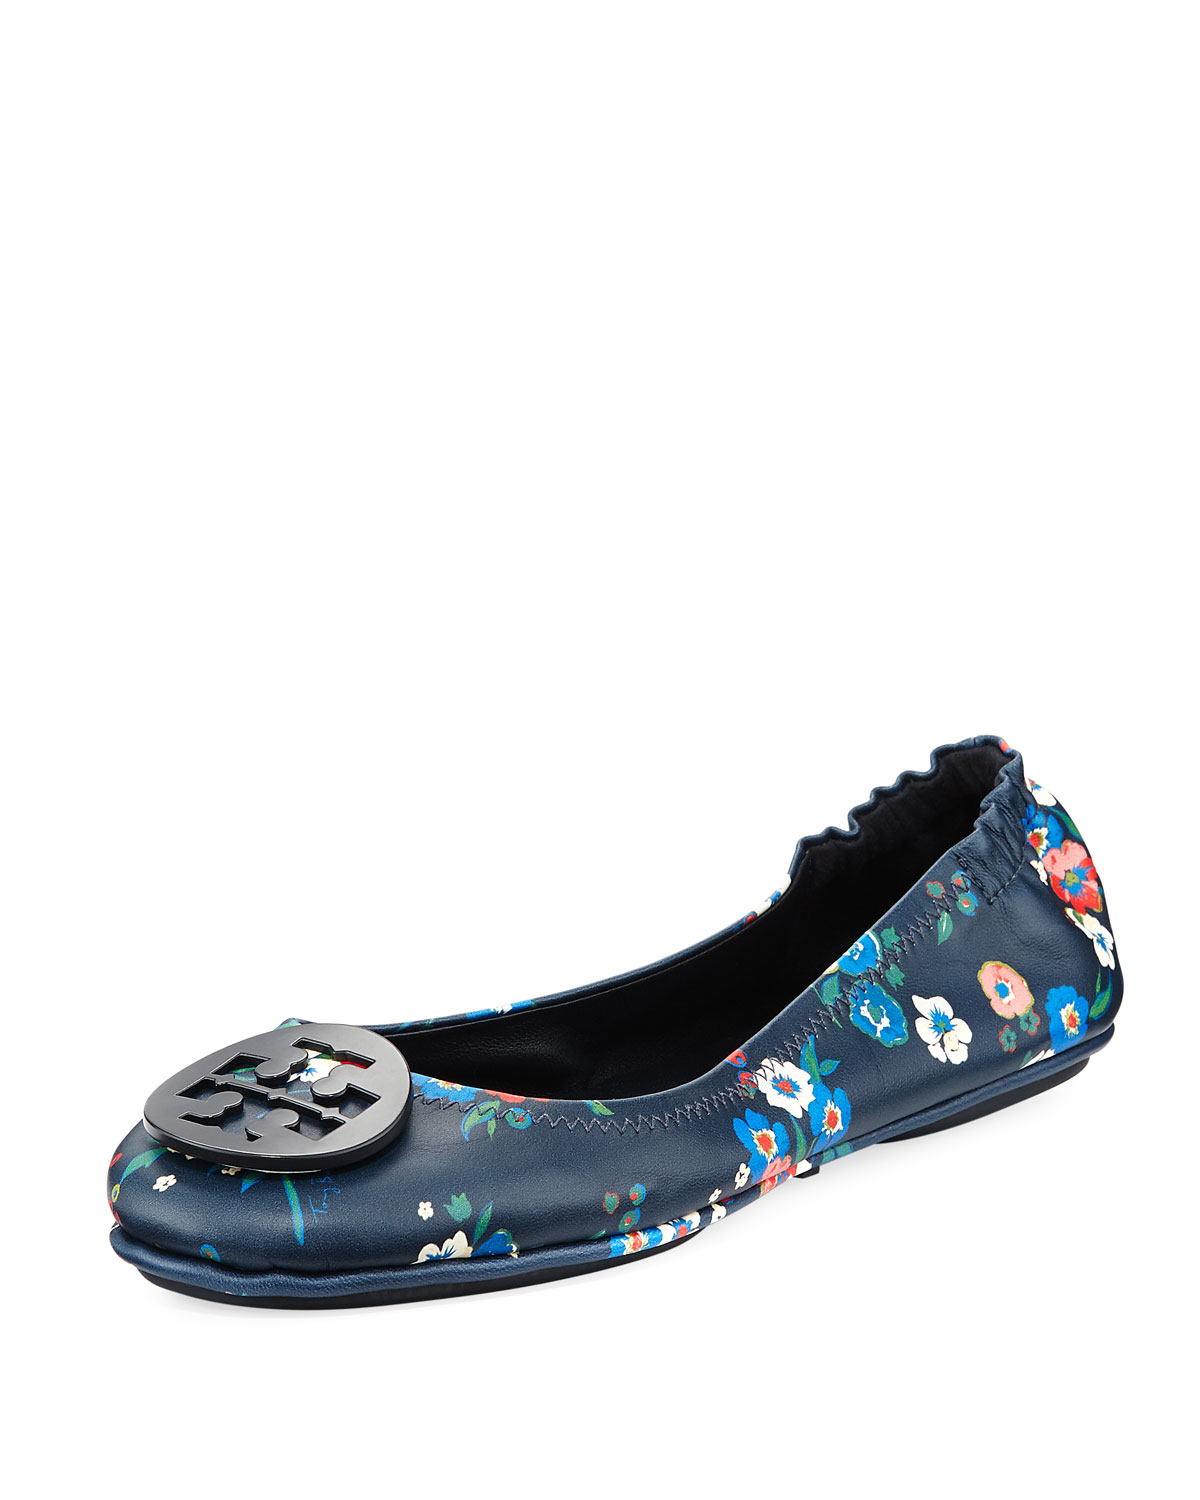 2b5842a392e Tory Burch Minnie Floral Travel Logo Ballet Flat